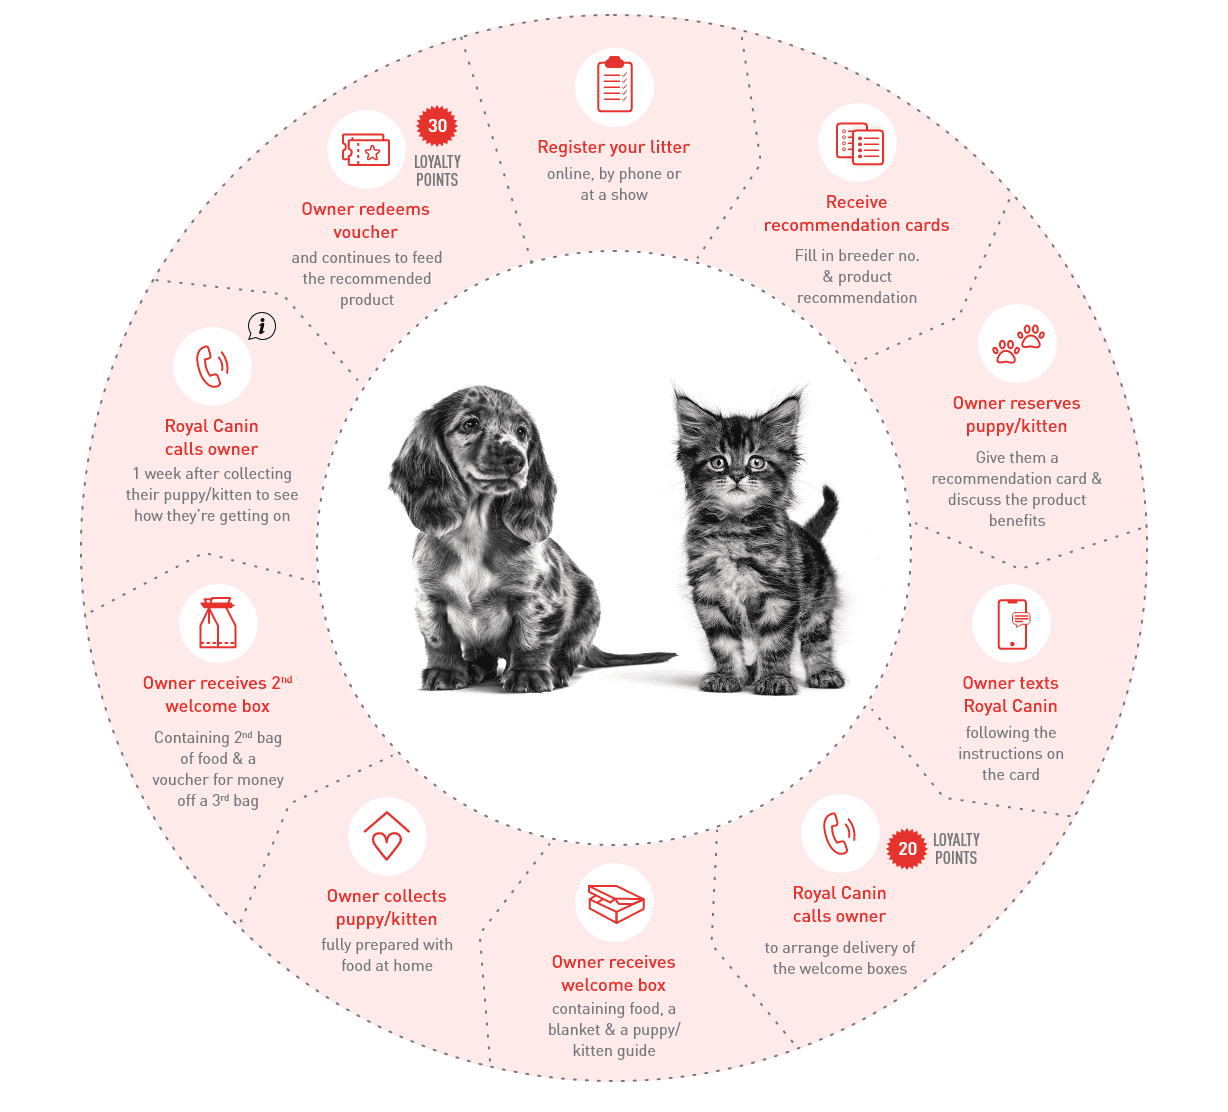 Making Your Royal Canin Recommendation diagram